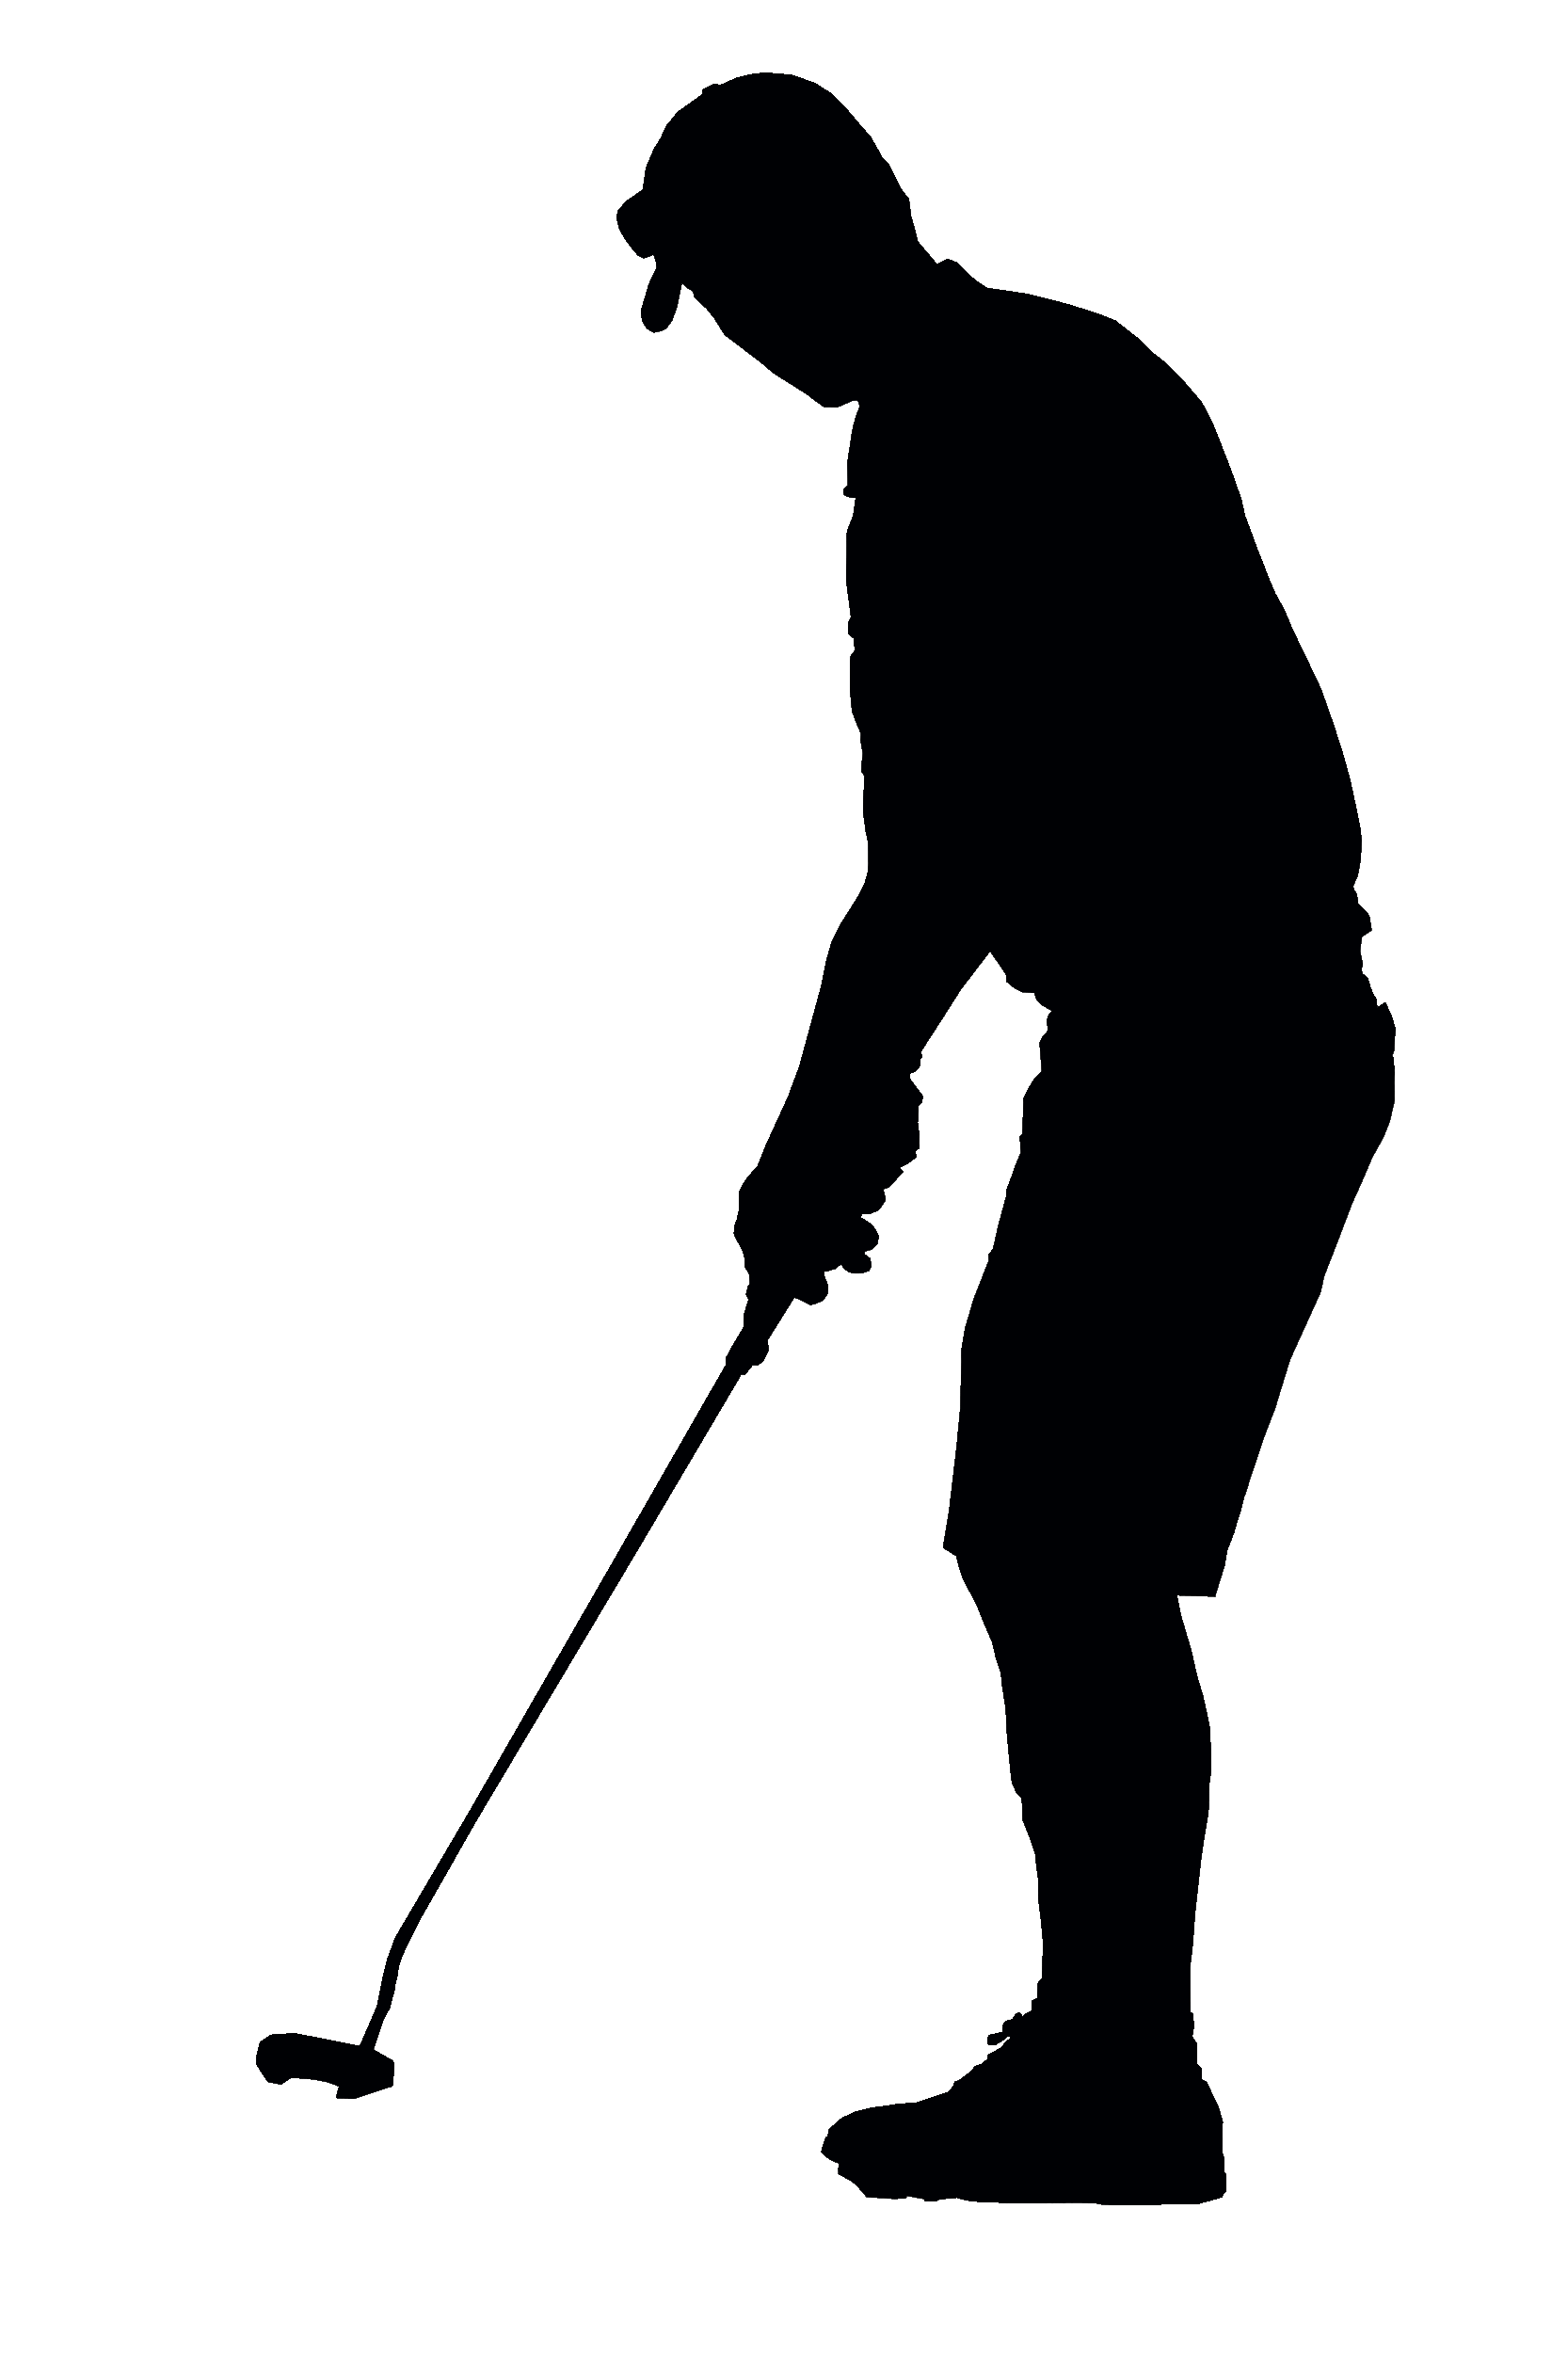 Golf clip art png. Golfer black silhouette transparent